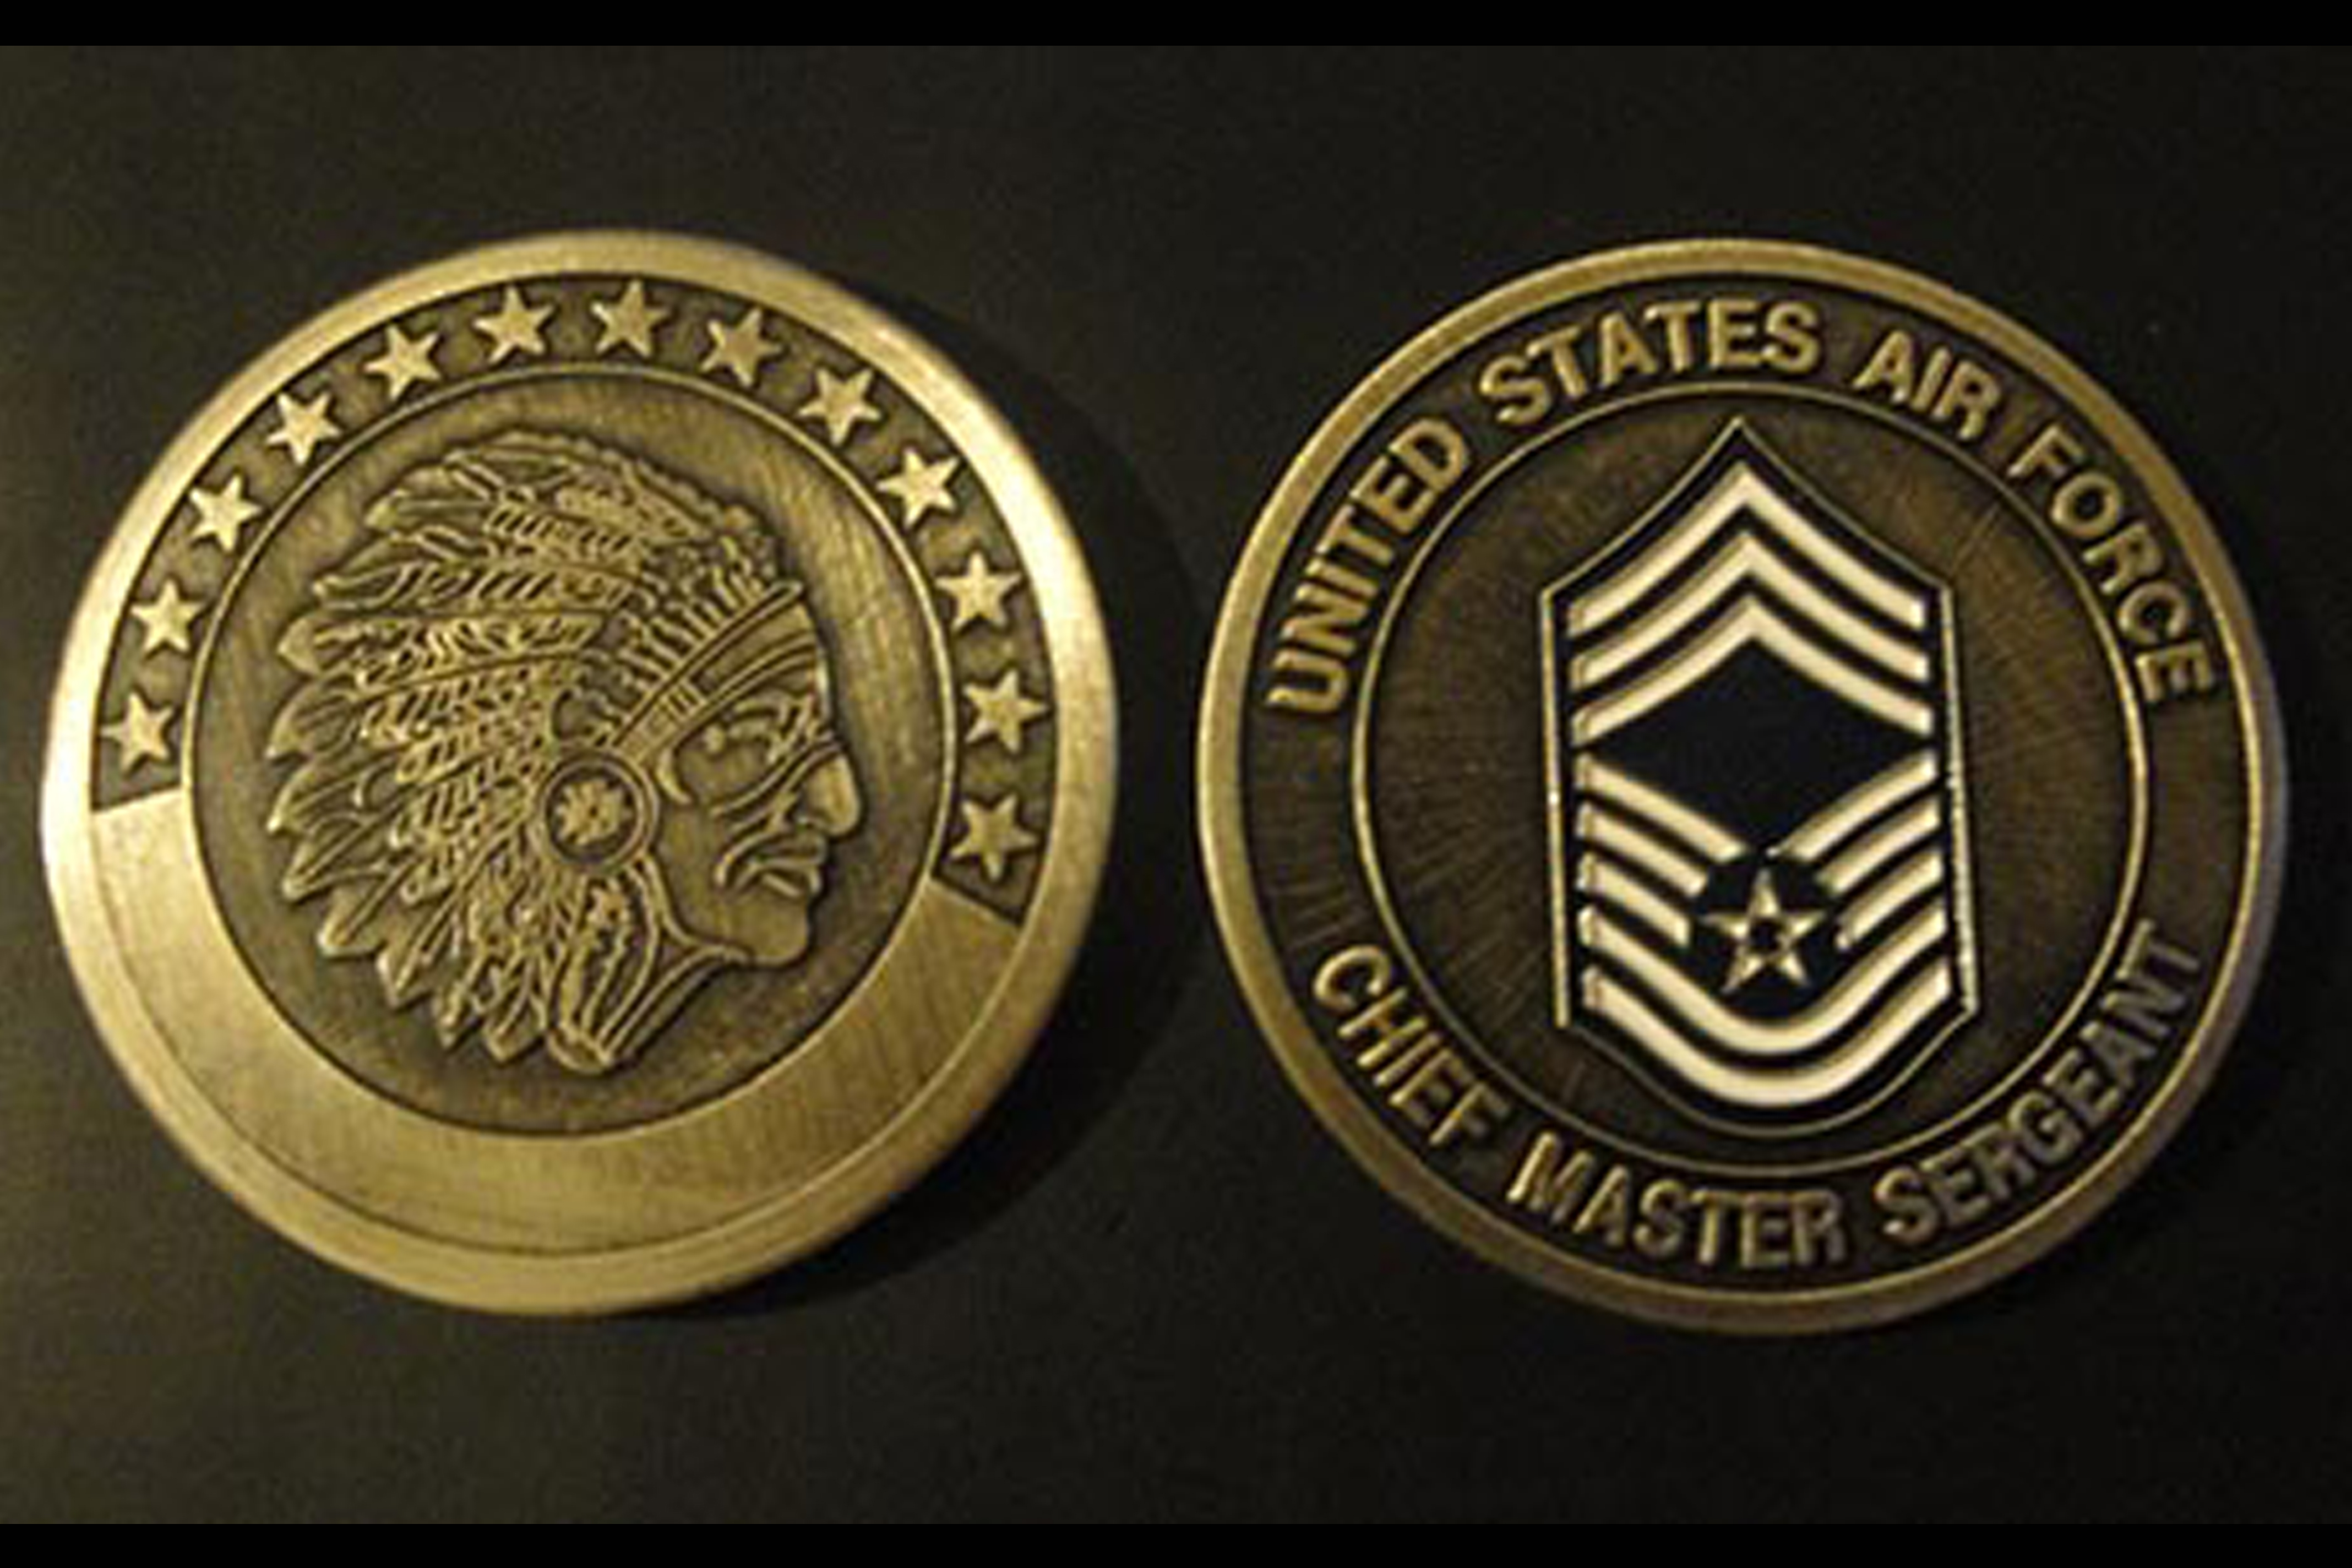 4b863570a2a8 Chief Master Sergeant Antique Gold Challenge Coin – Cartouche and ...